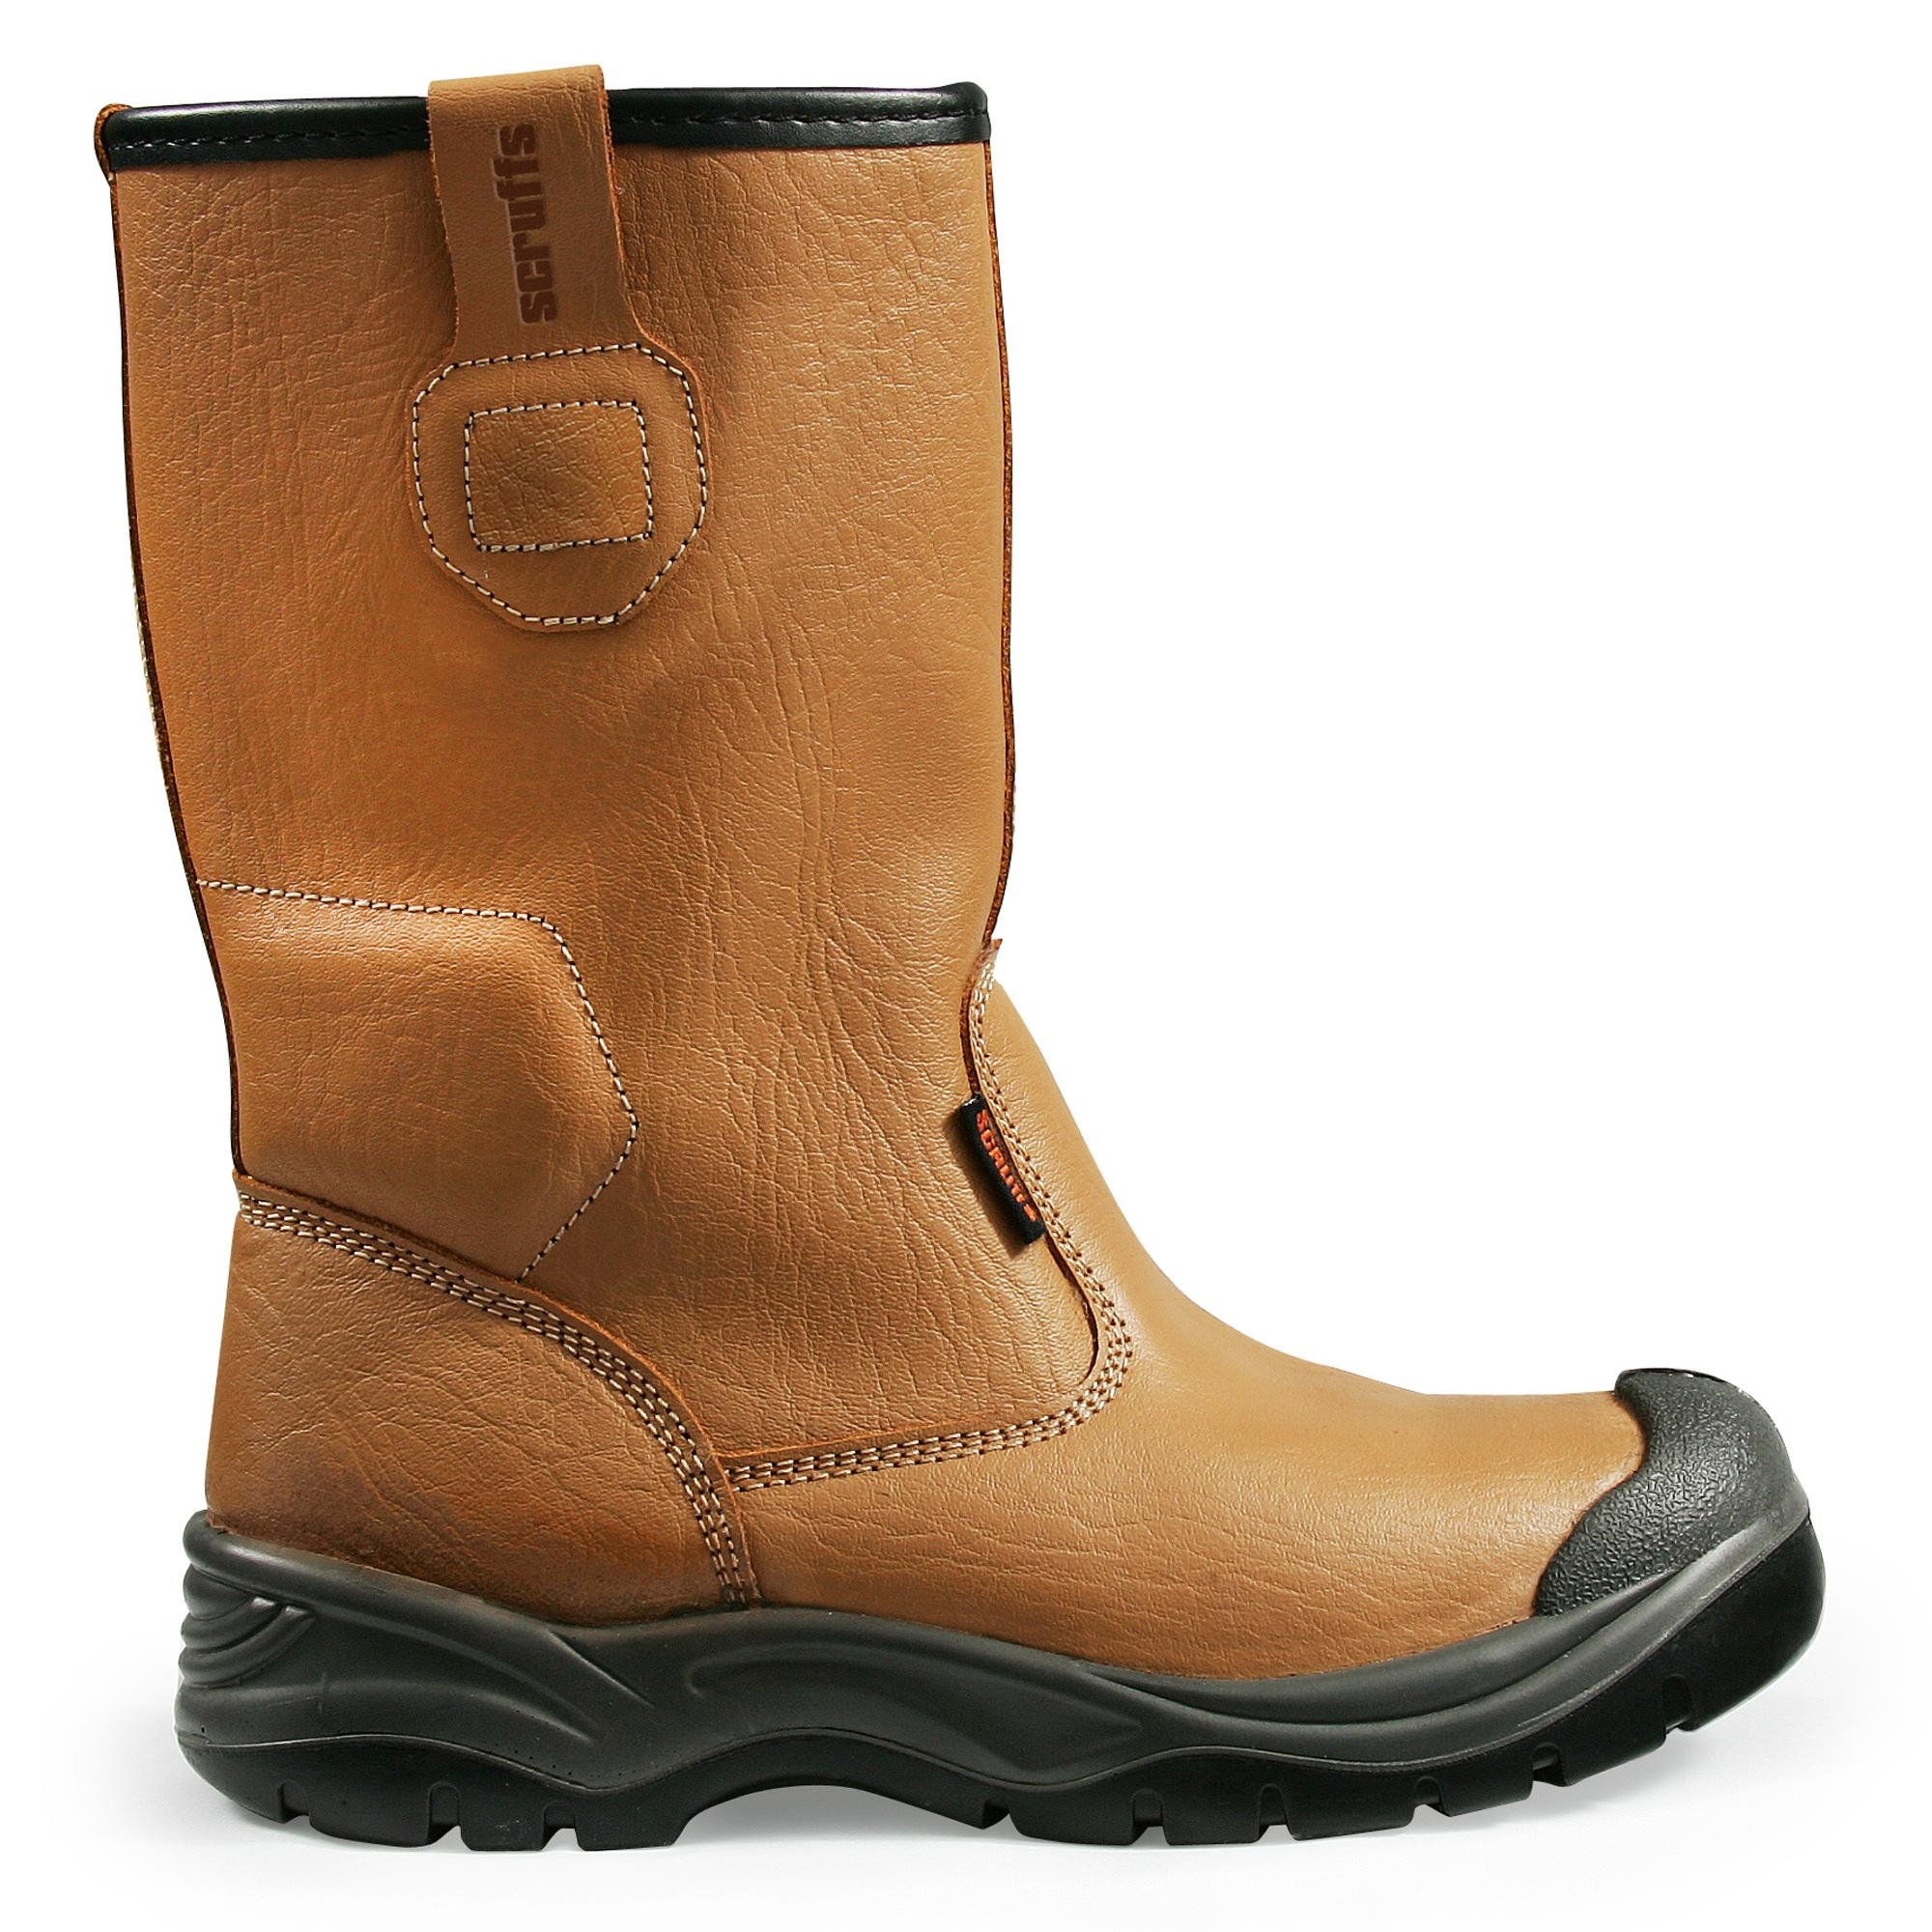 Scruffs Gravity Rigger Safety Boots